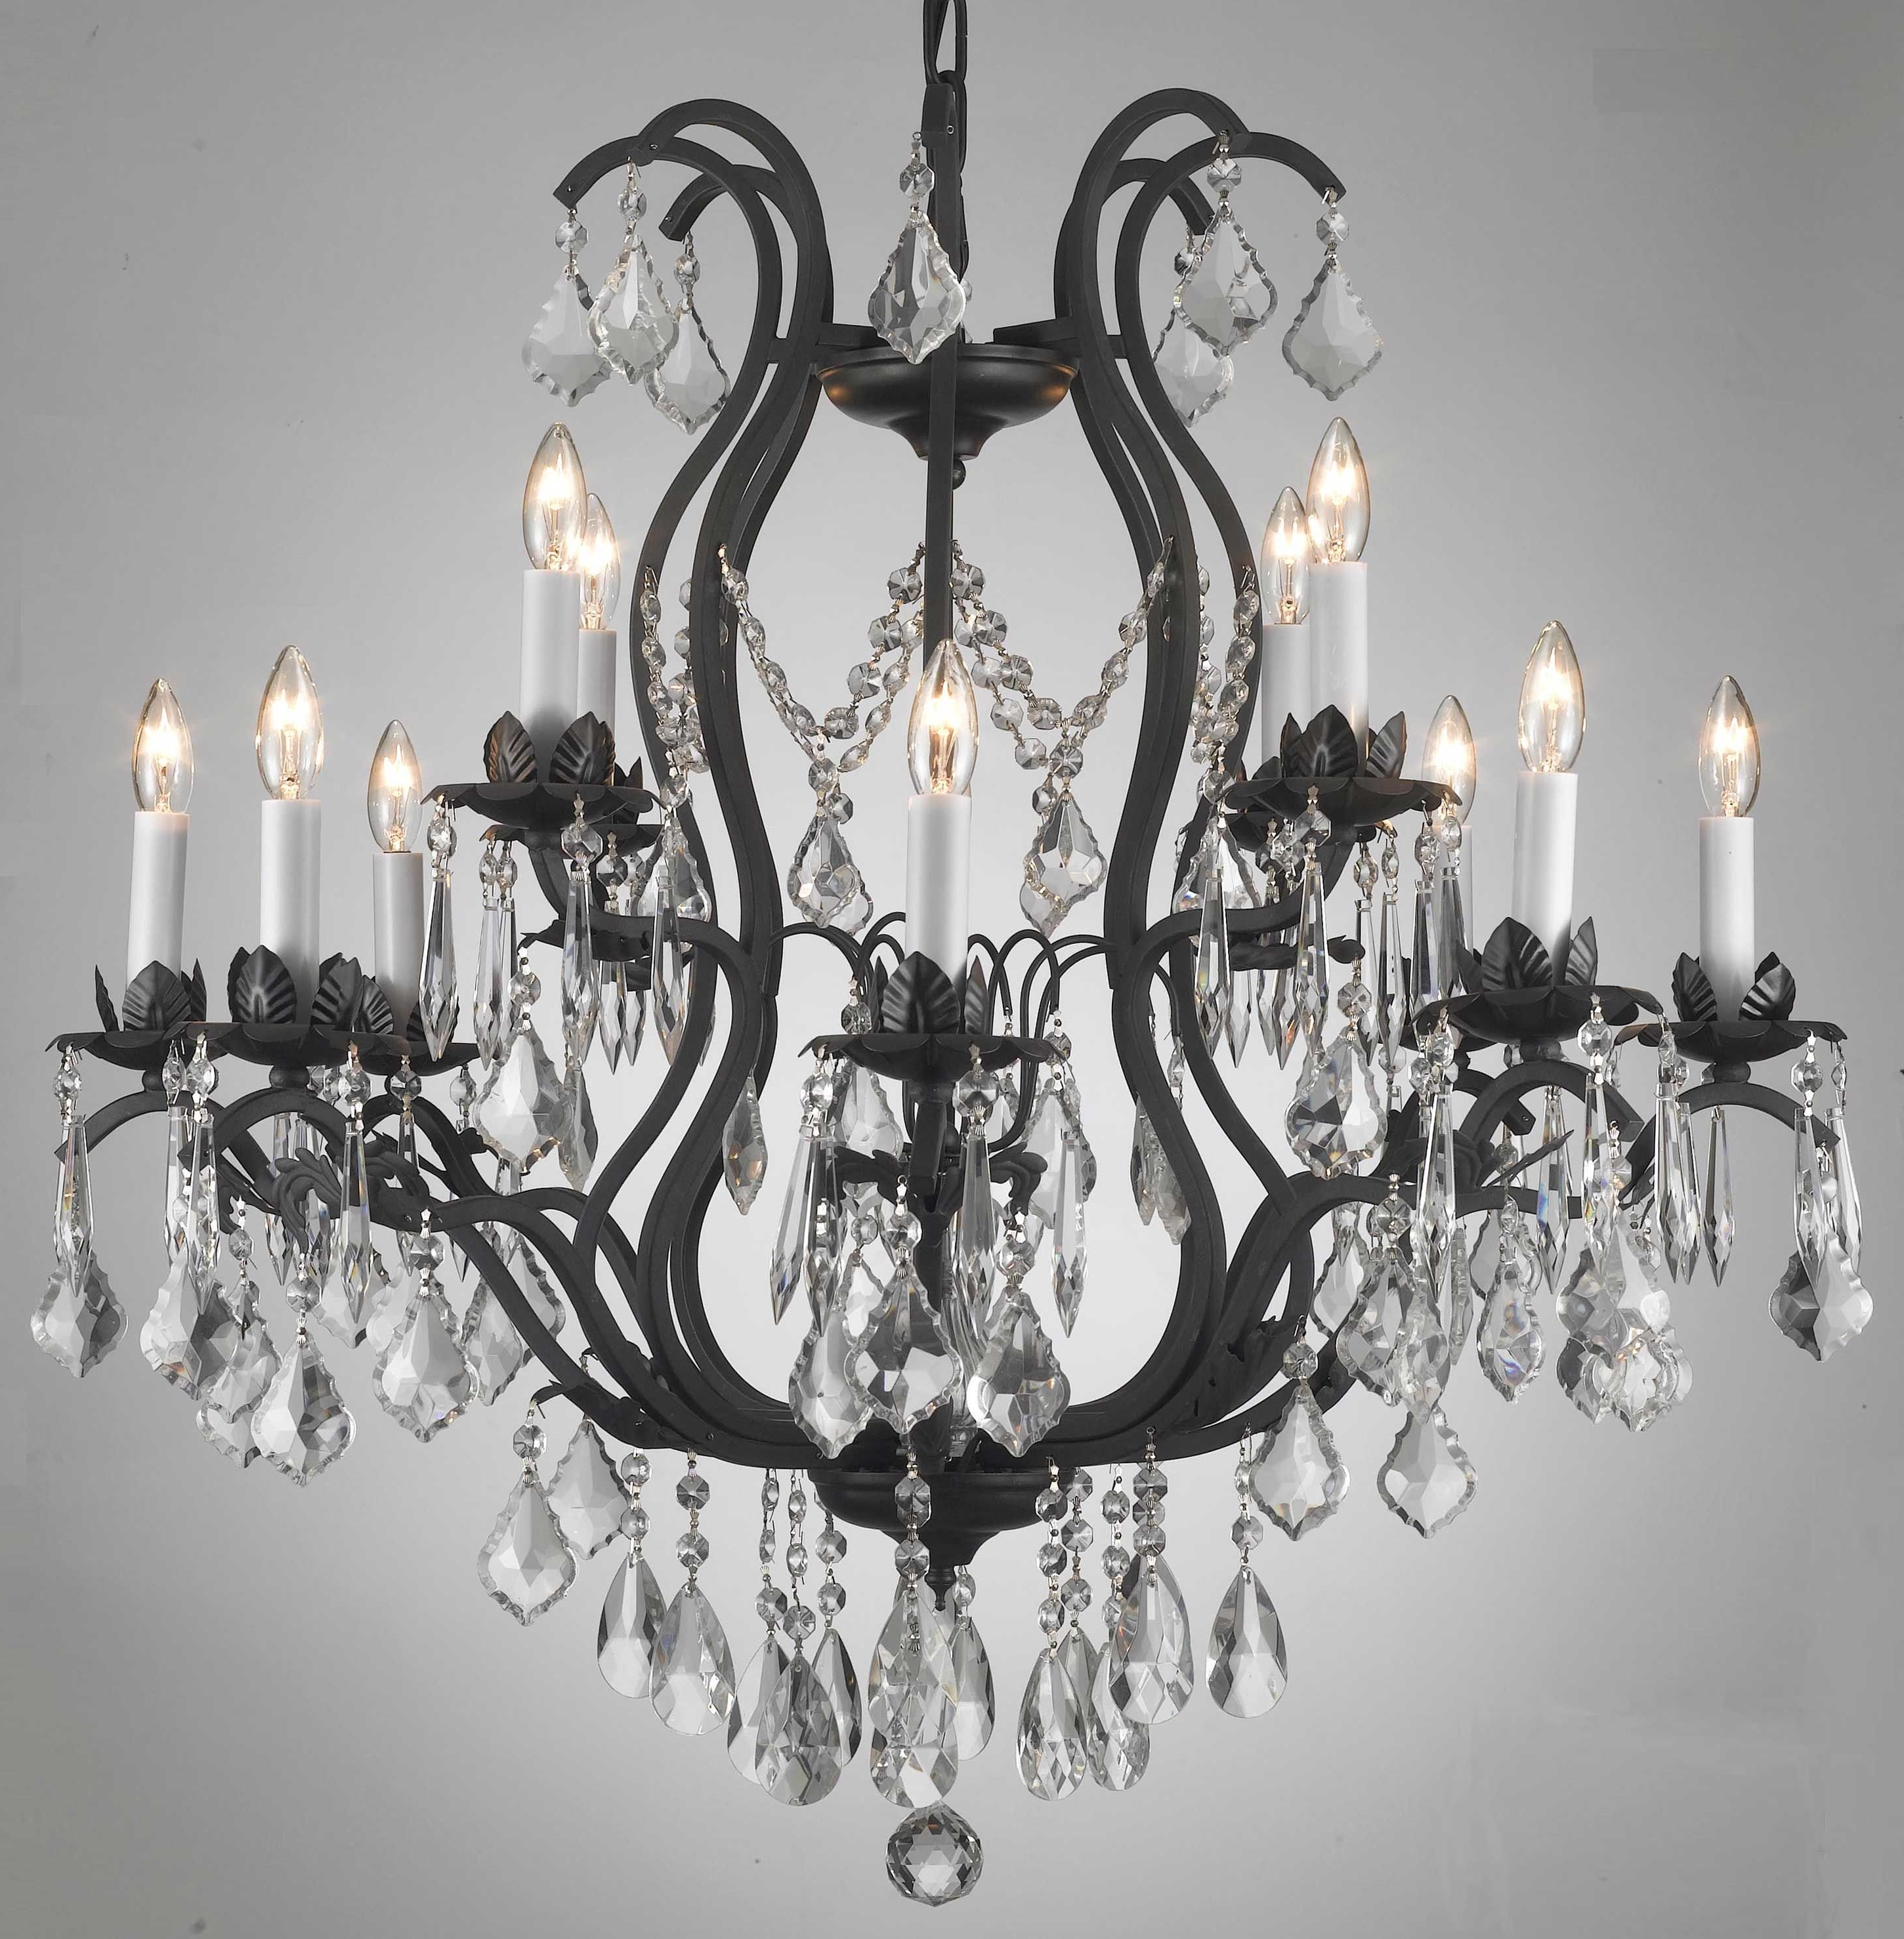 Most Recent A83 3034/8+4 Wrought Iron Chandelier Chandeliers, Crystal Chandelier Throughout Black Iron Chandeliers (View 13 of 20)